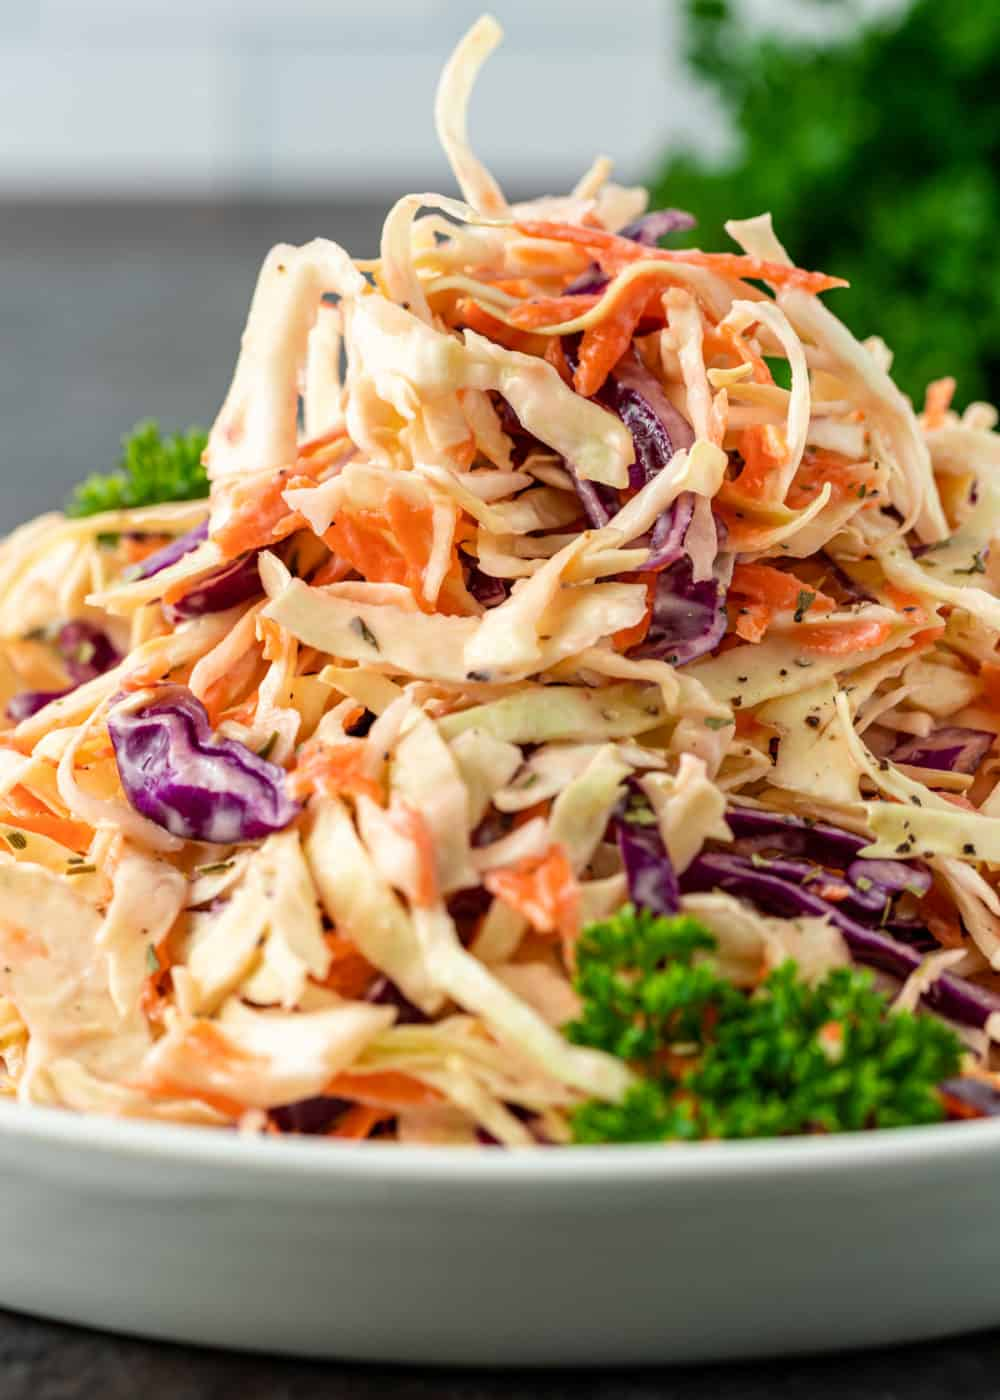 plate piled high with southern coleslaw in creamy vinegar dressing